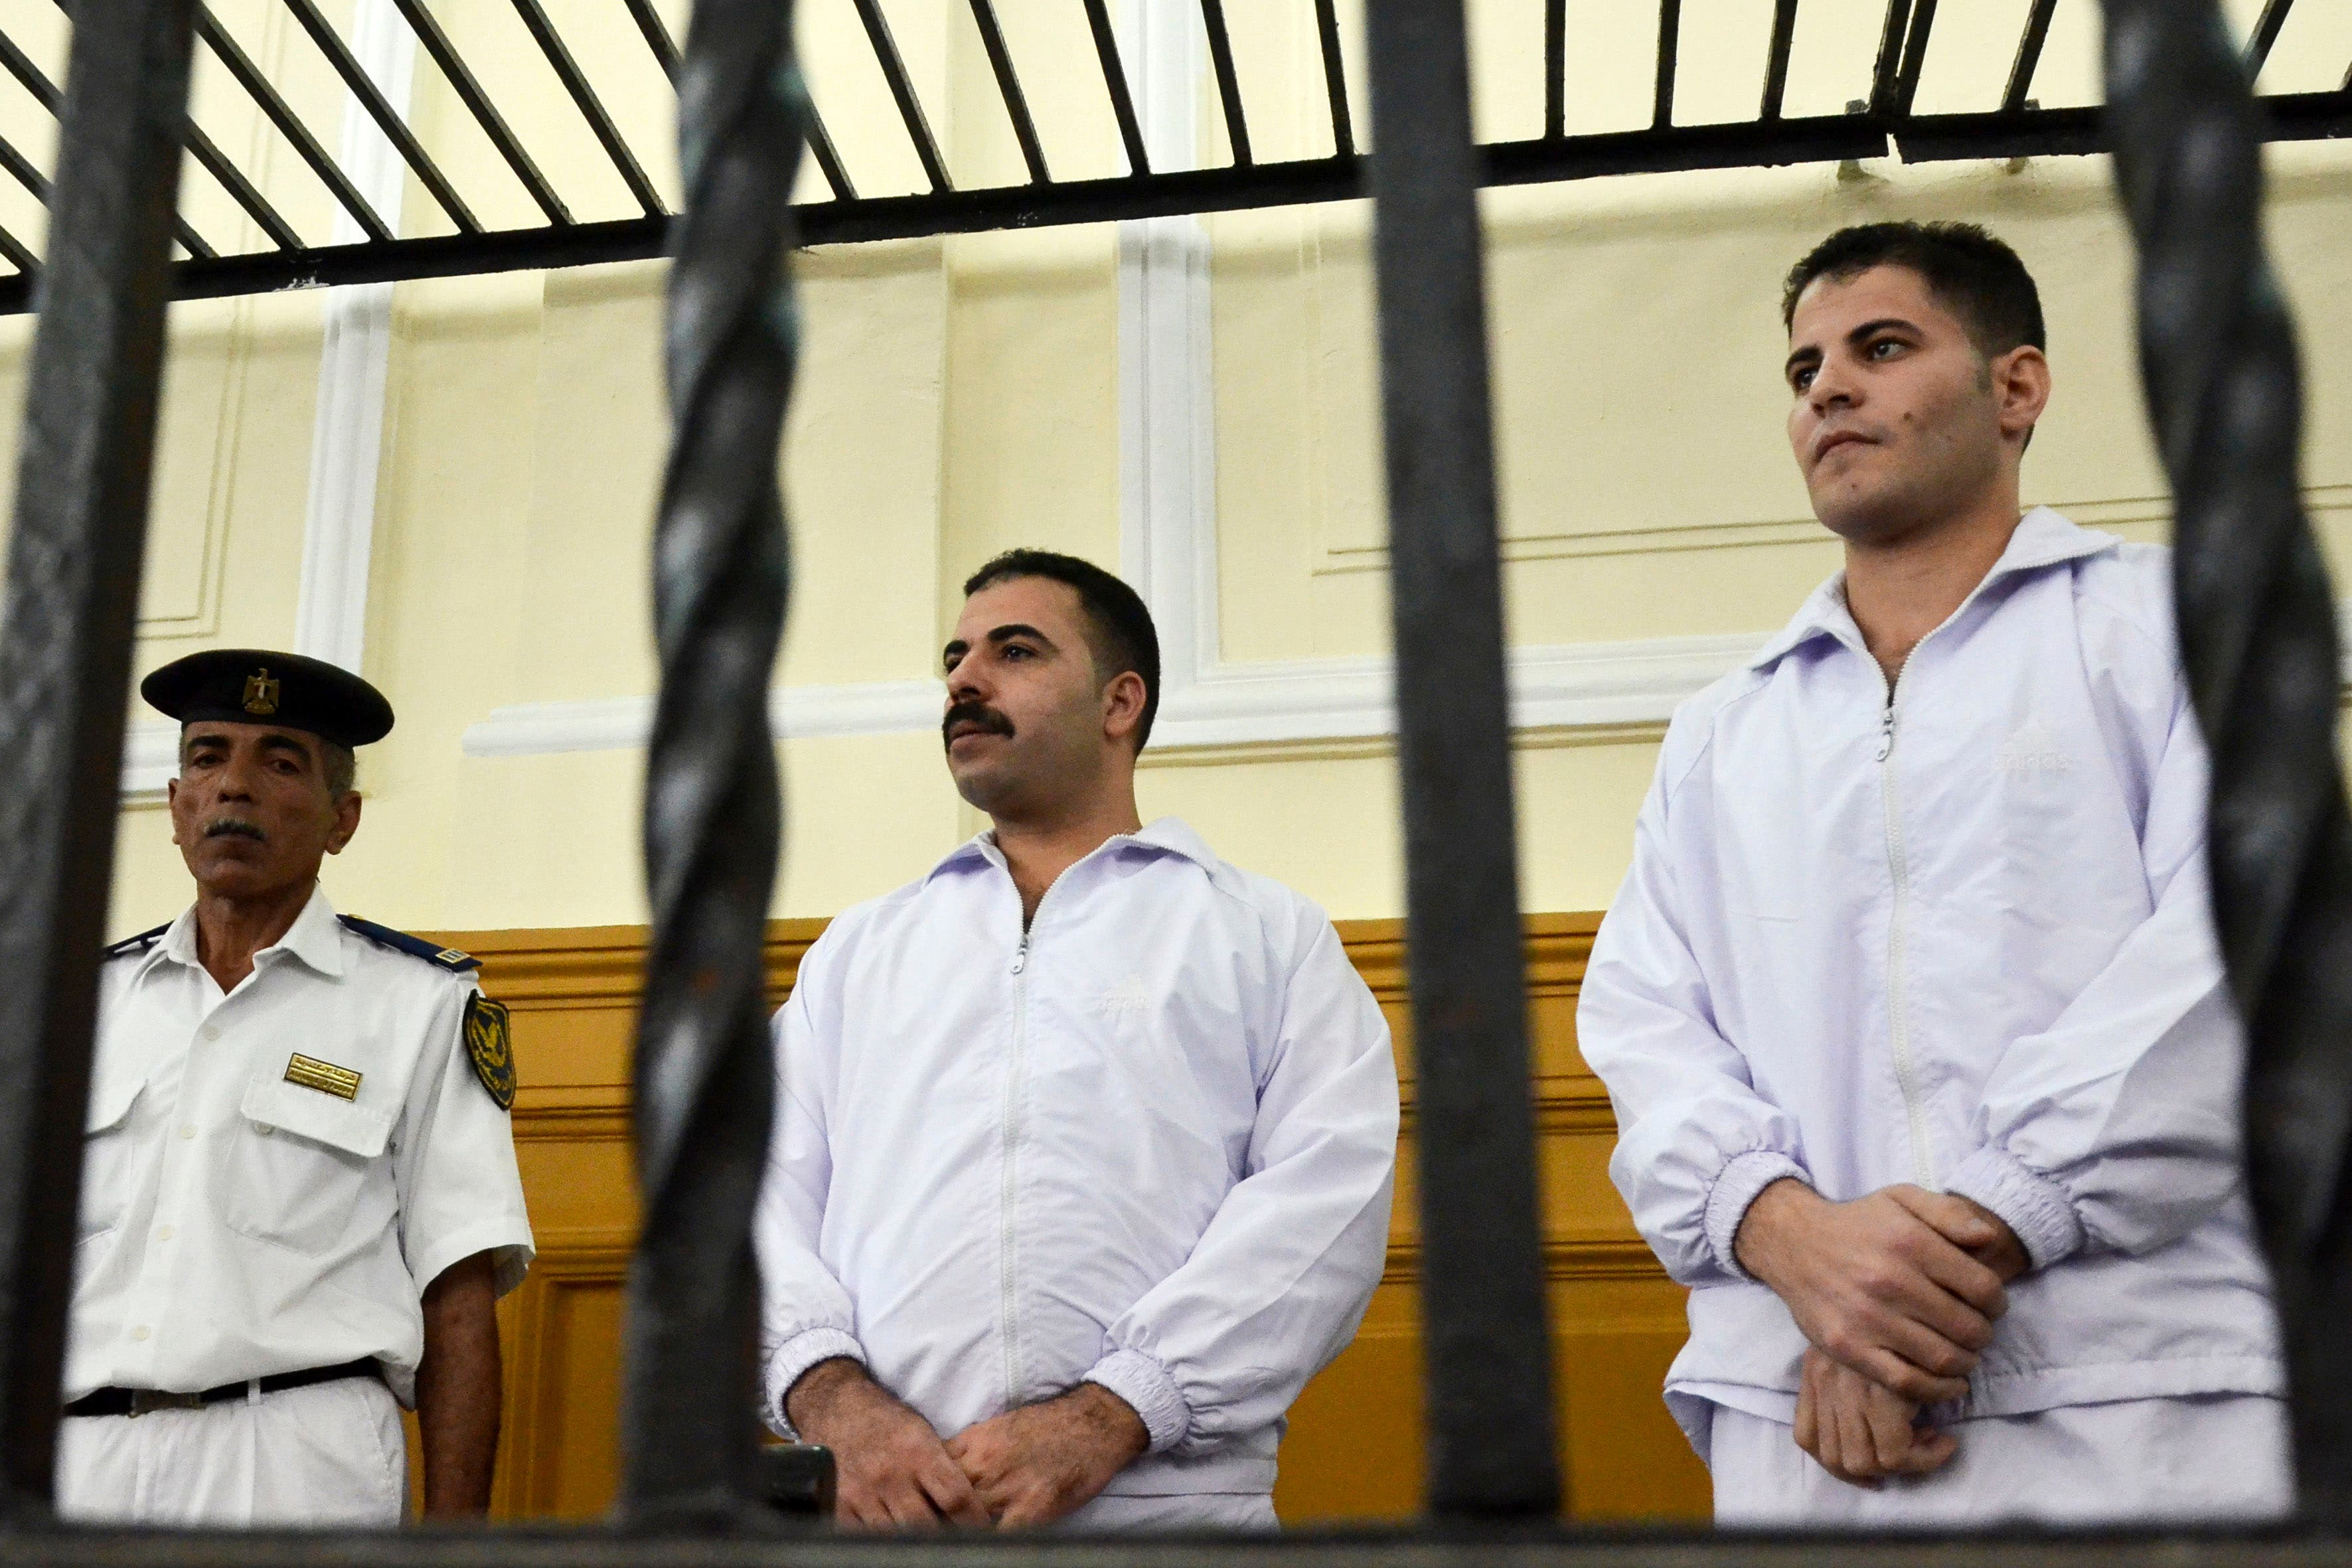 Policemen Awad Ismail, center, and Amin Mahmoud Salah, right, defendants in the beating death of Khaled Said, stand trial in a courtroom in Alexandria, Egypt, Saturday, Sept. 24, 2011. (AP)